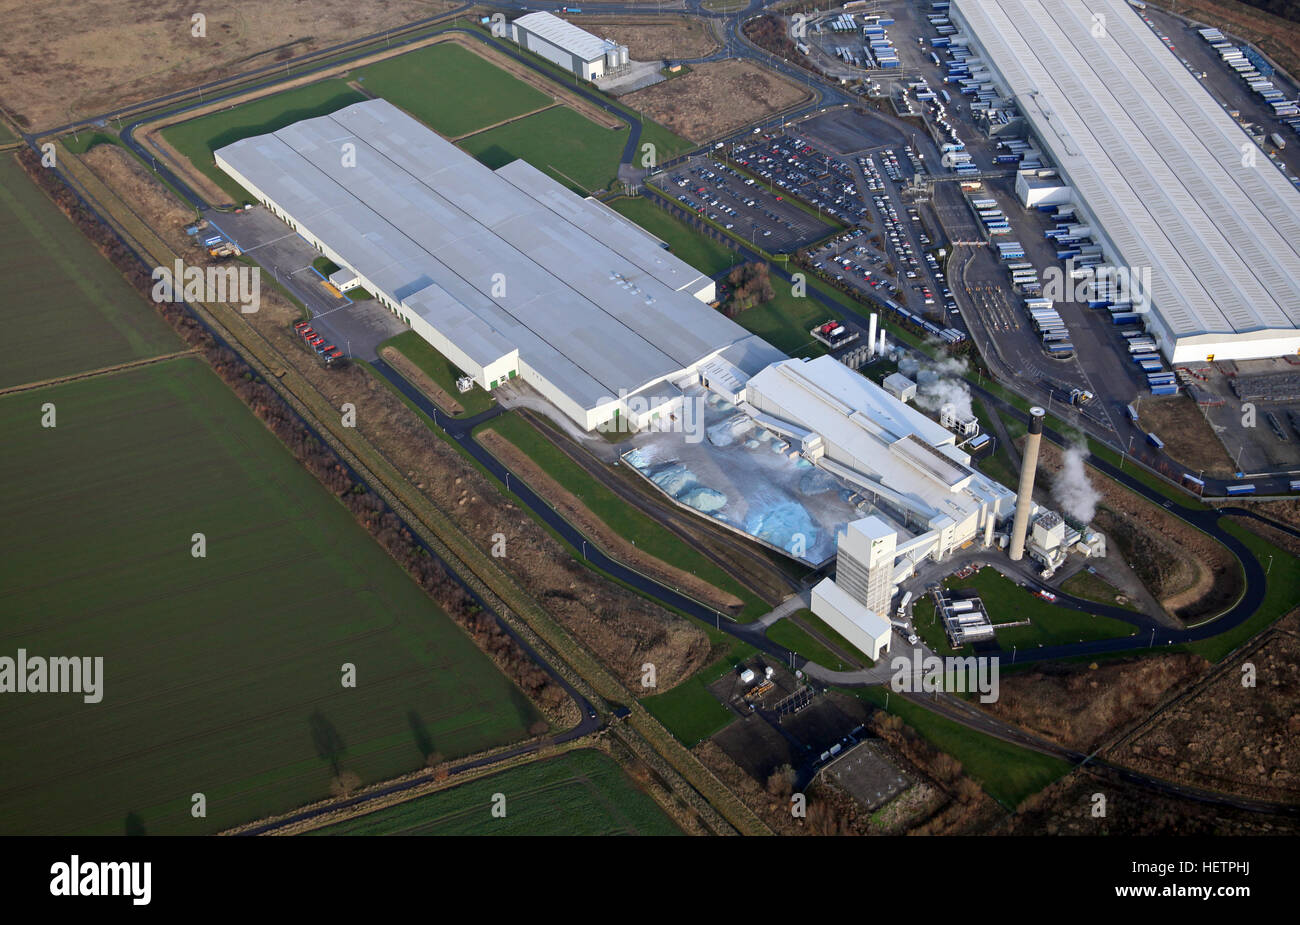 aerial view of Guardian Industries UK Ltd glass factory at Goole, East Yorkshire, UK - Stock Image